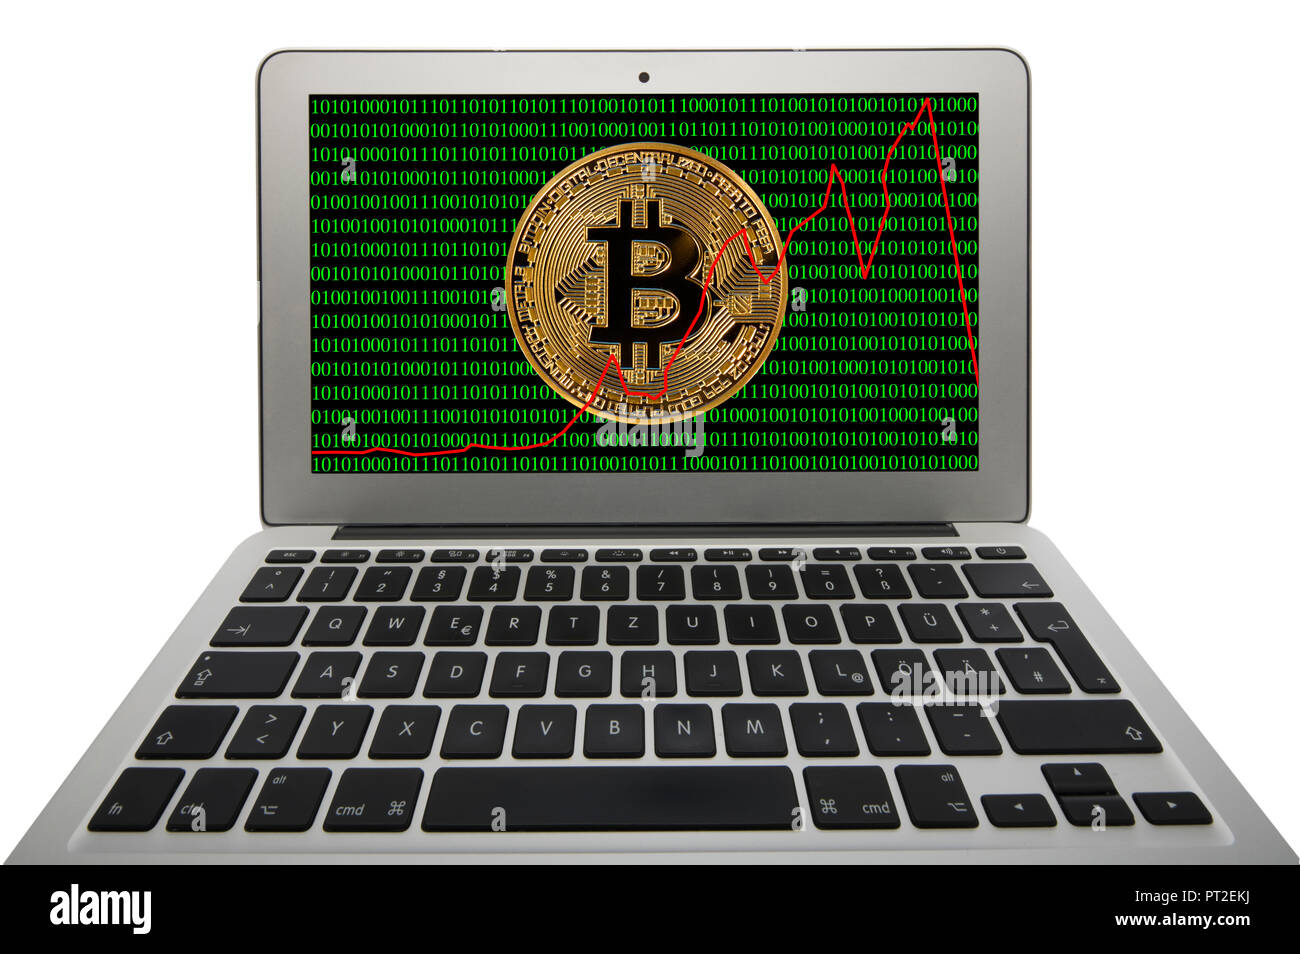 Symbol image of turbulence, volatility, stock price digital currency, golden physical coin Bitcoin laptop with digital binary code - Stock Image